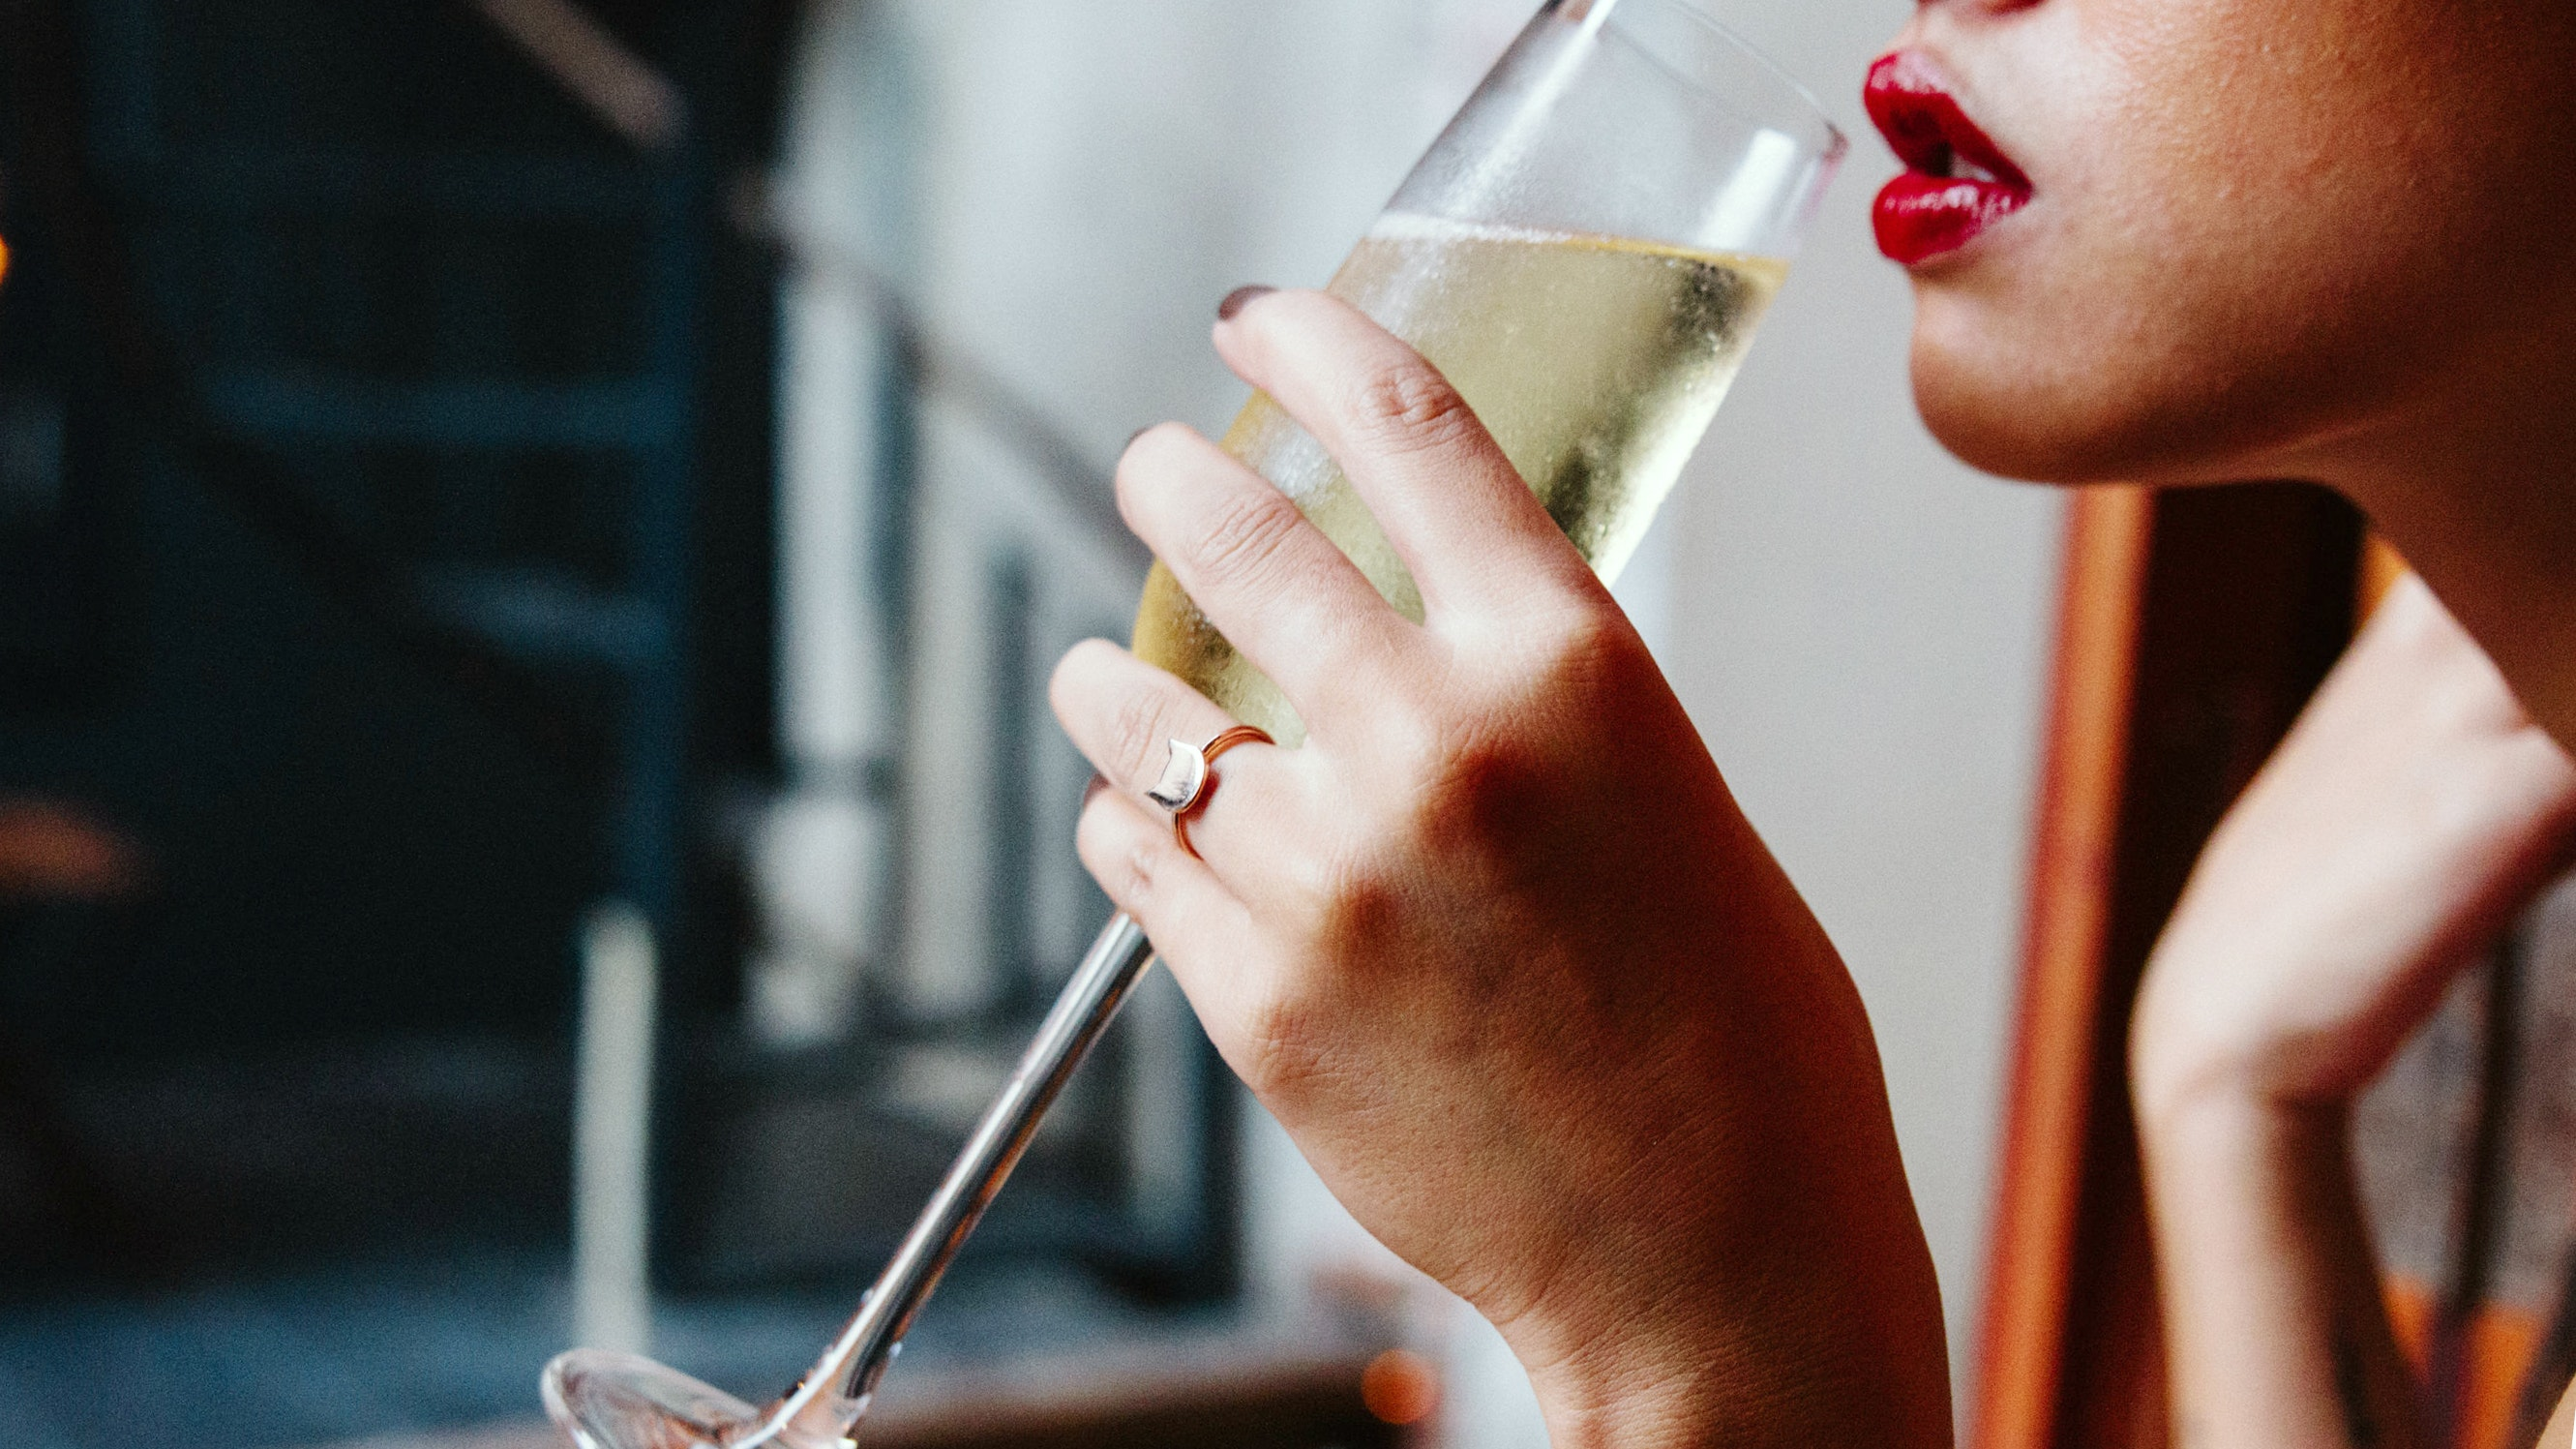 Puffiness, Breakouts, and More Negative Effects of Alcohol on Skin — and How to Hide Them